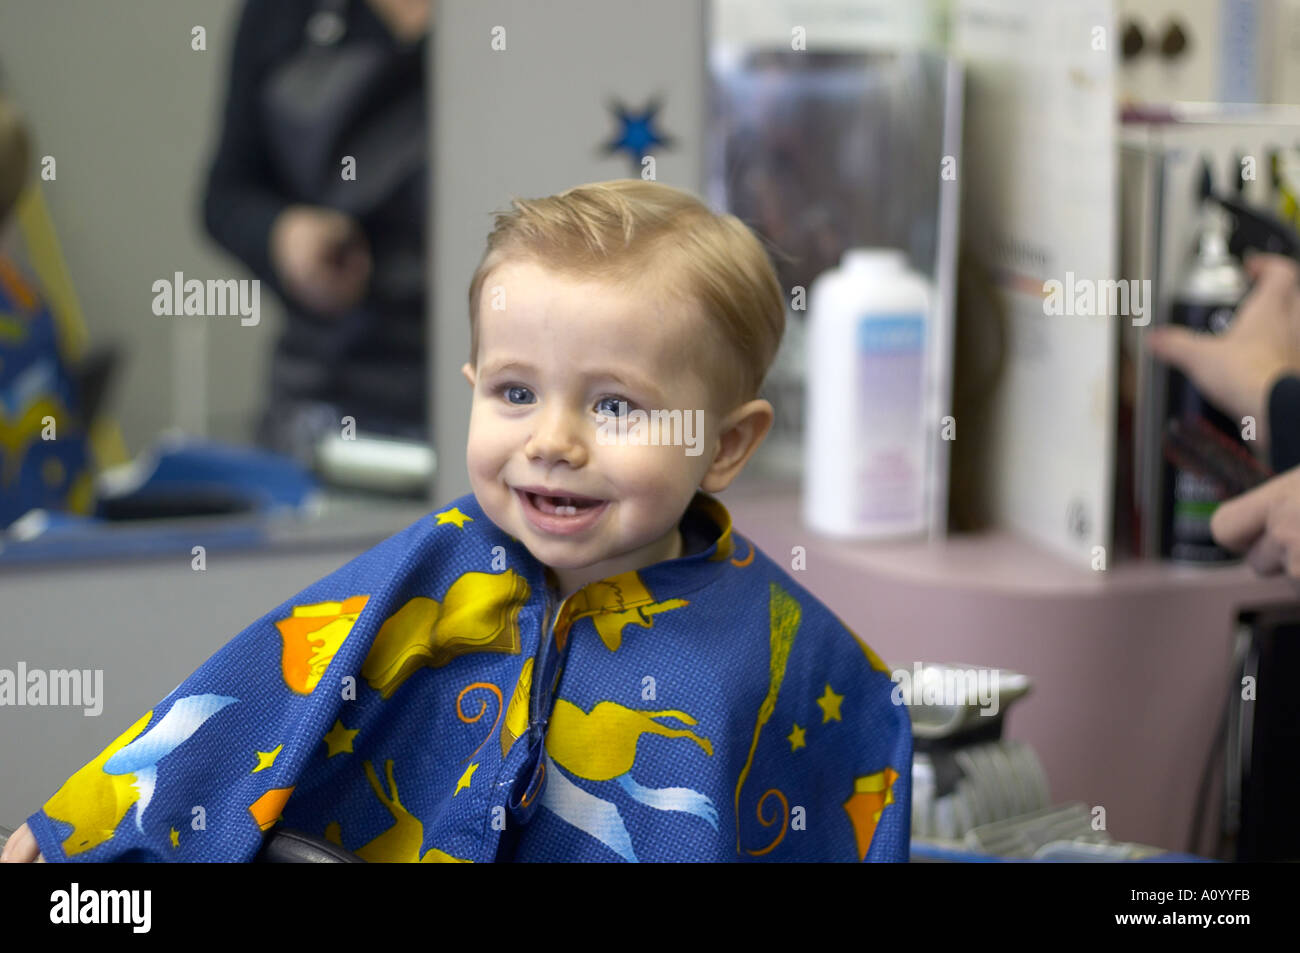 boy haircuts 1 year old: baby boy fade haircuts hairs picture